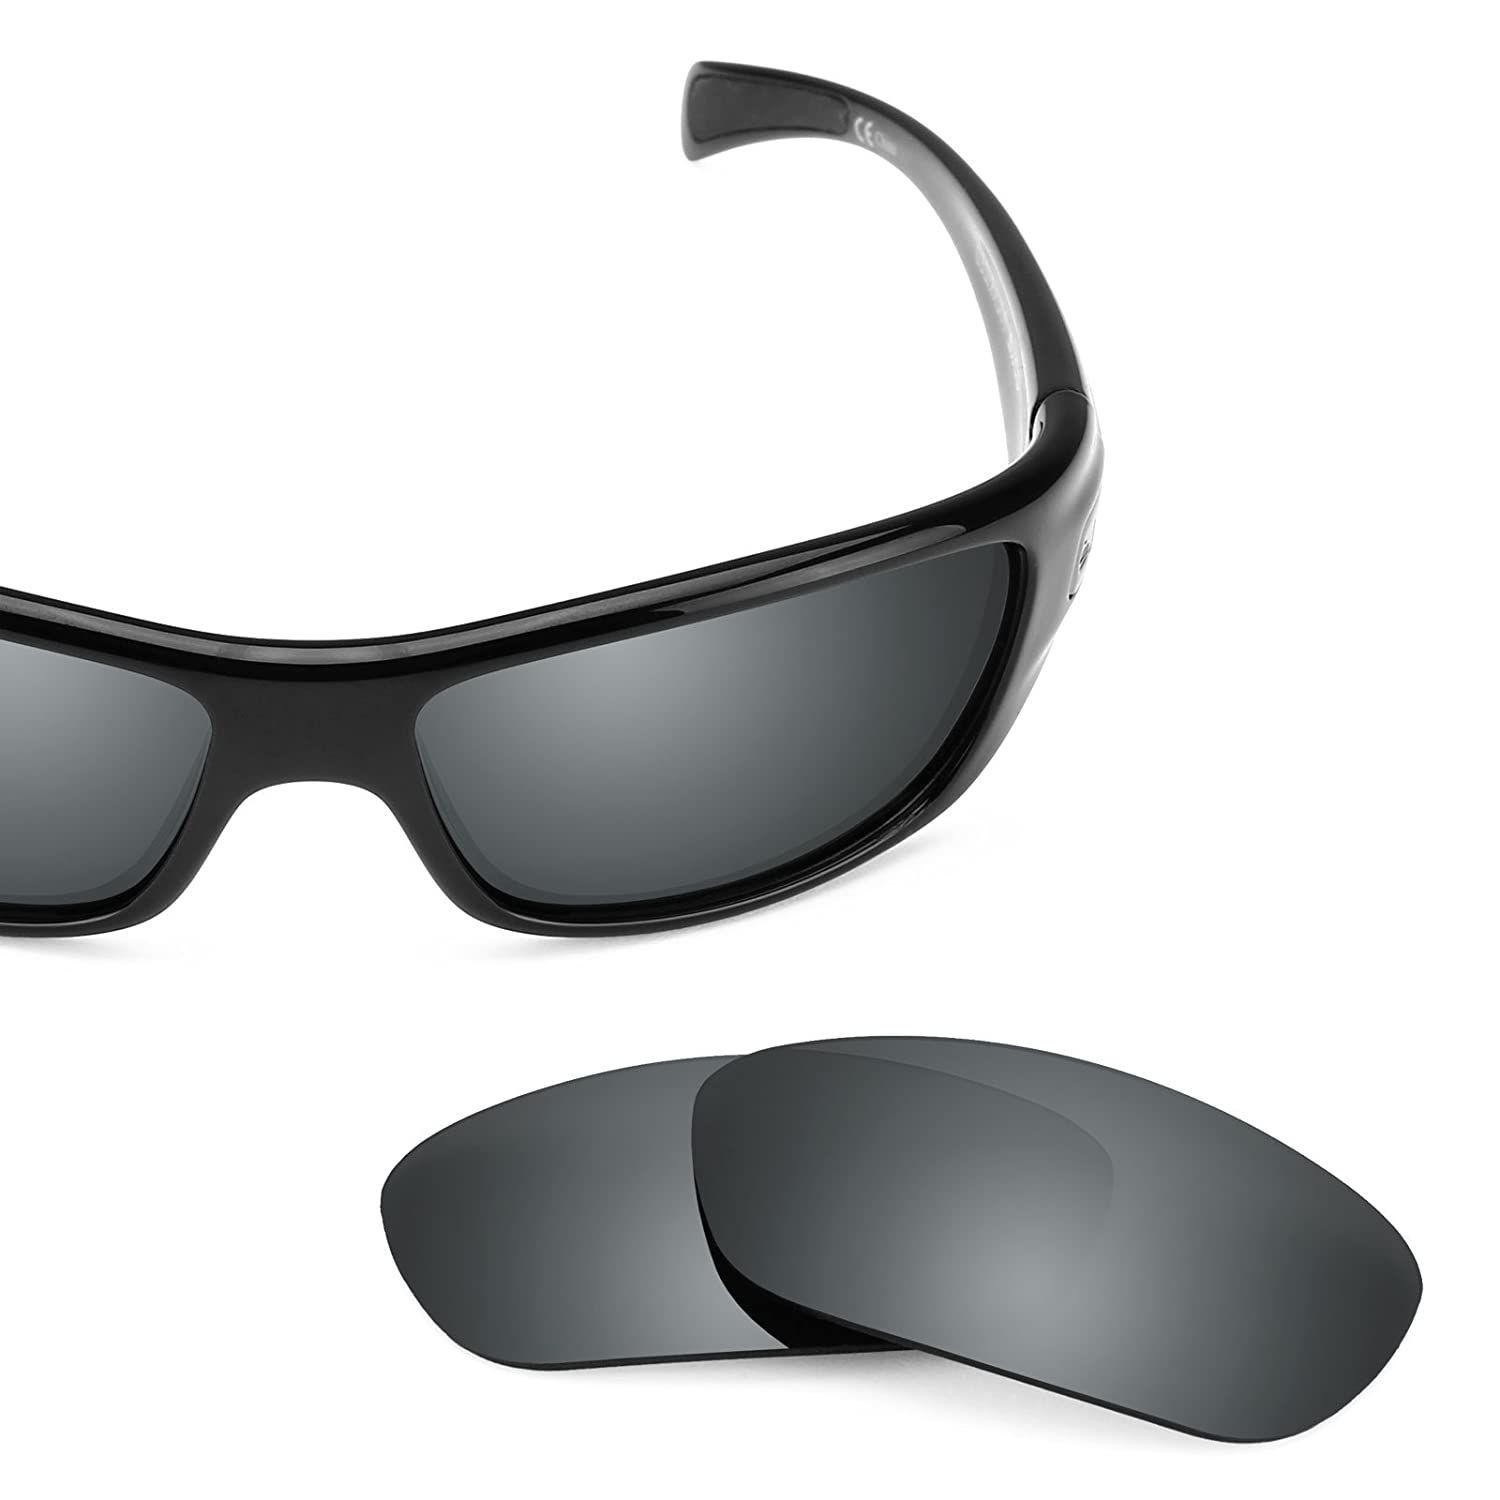 c5025a116d Amazon.com  Revant Polarized Replacement Lenses for Bolle Copperhead Black  Chrome MirrorShield  Sports   Outdoors